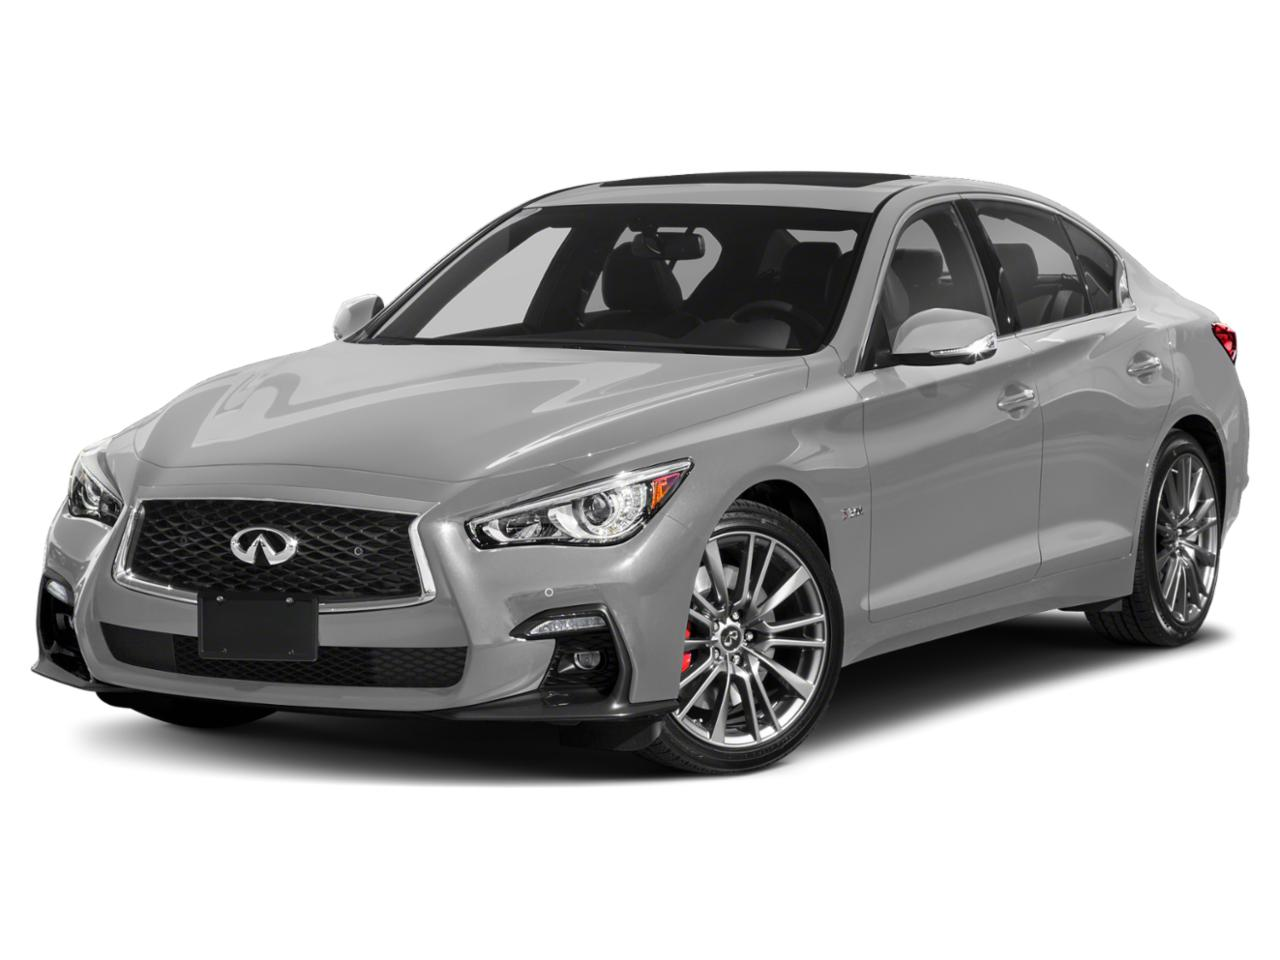 2018 INFINITI Q50 Vehicle Photo in Appleton, WI 54913